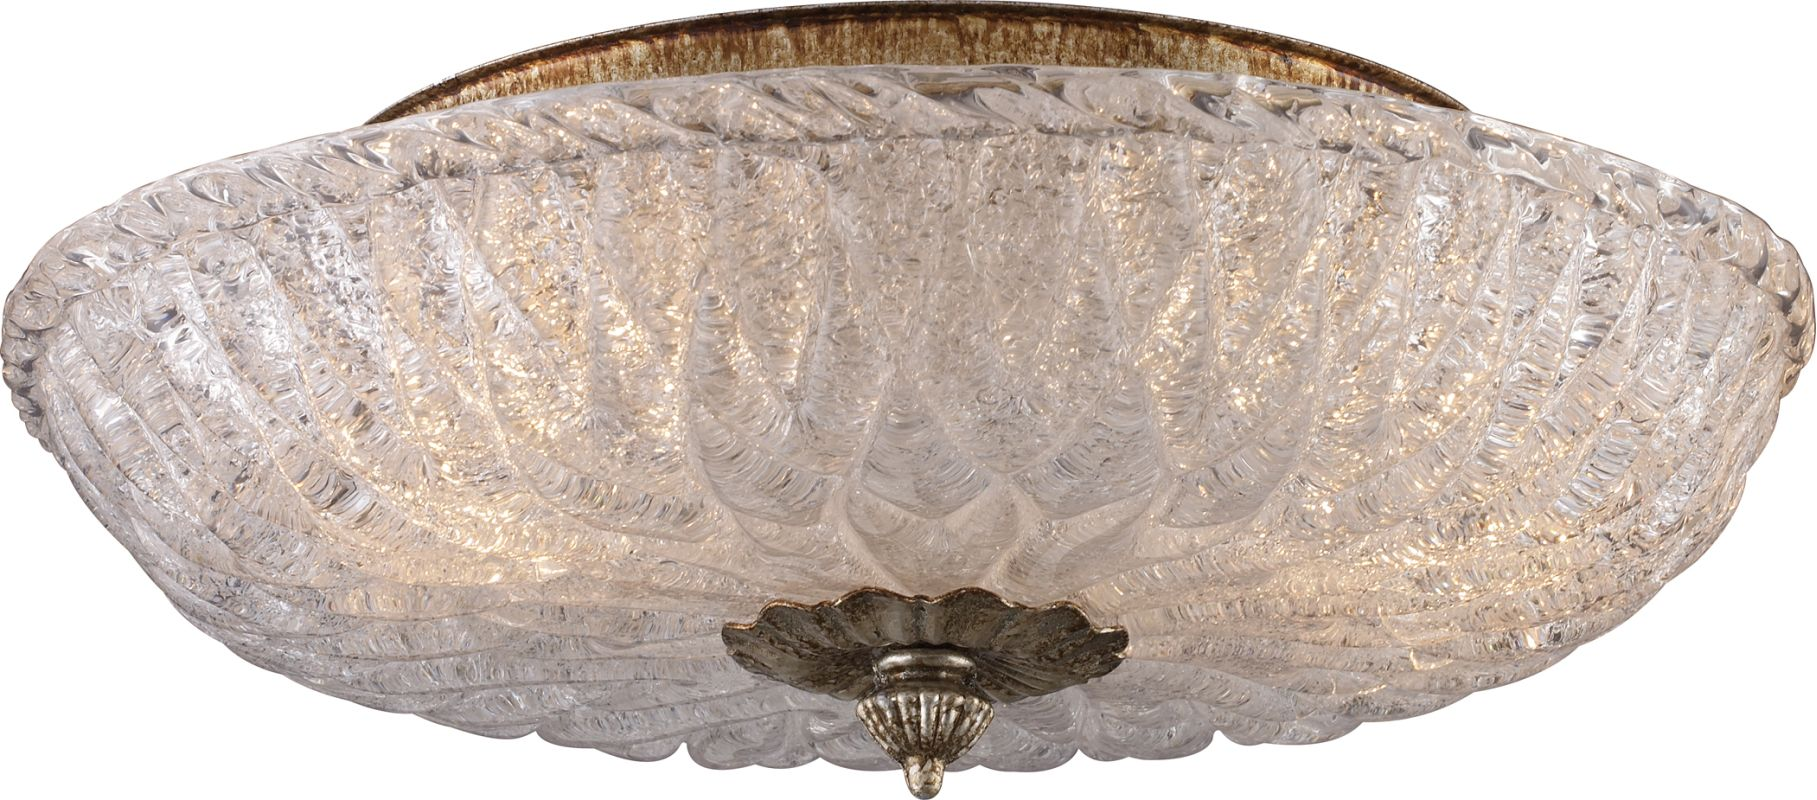 ELK Lighting 1513/2 Providence 2 Light Flush Mount Ceiling Fixture Sale $232.00 ITEM: bci574244 ID#:1513/2 UPC: 748119151328 :